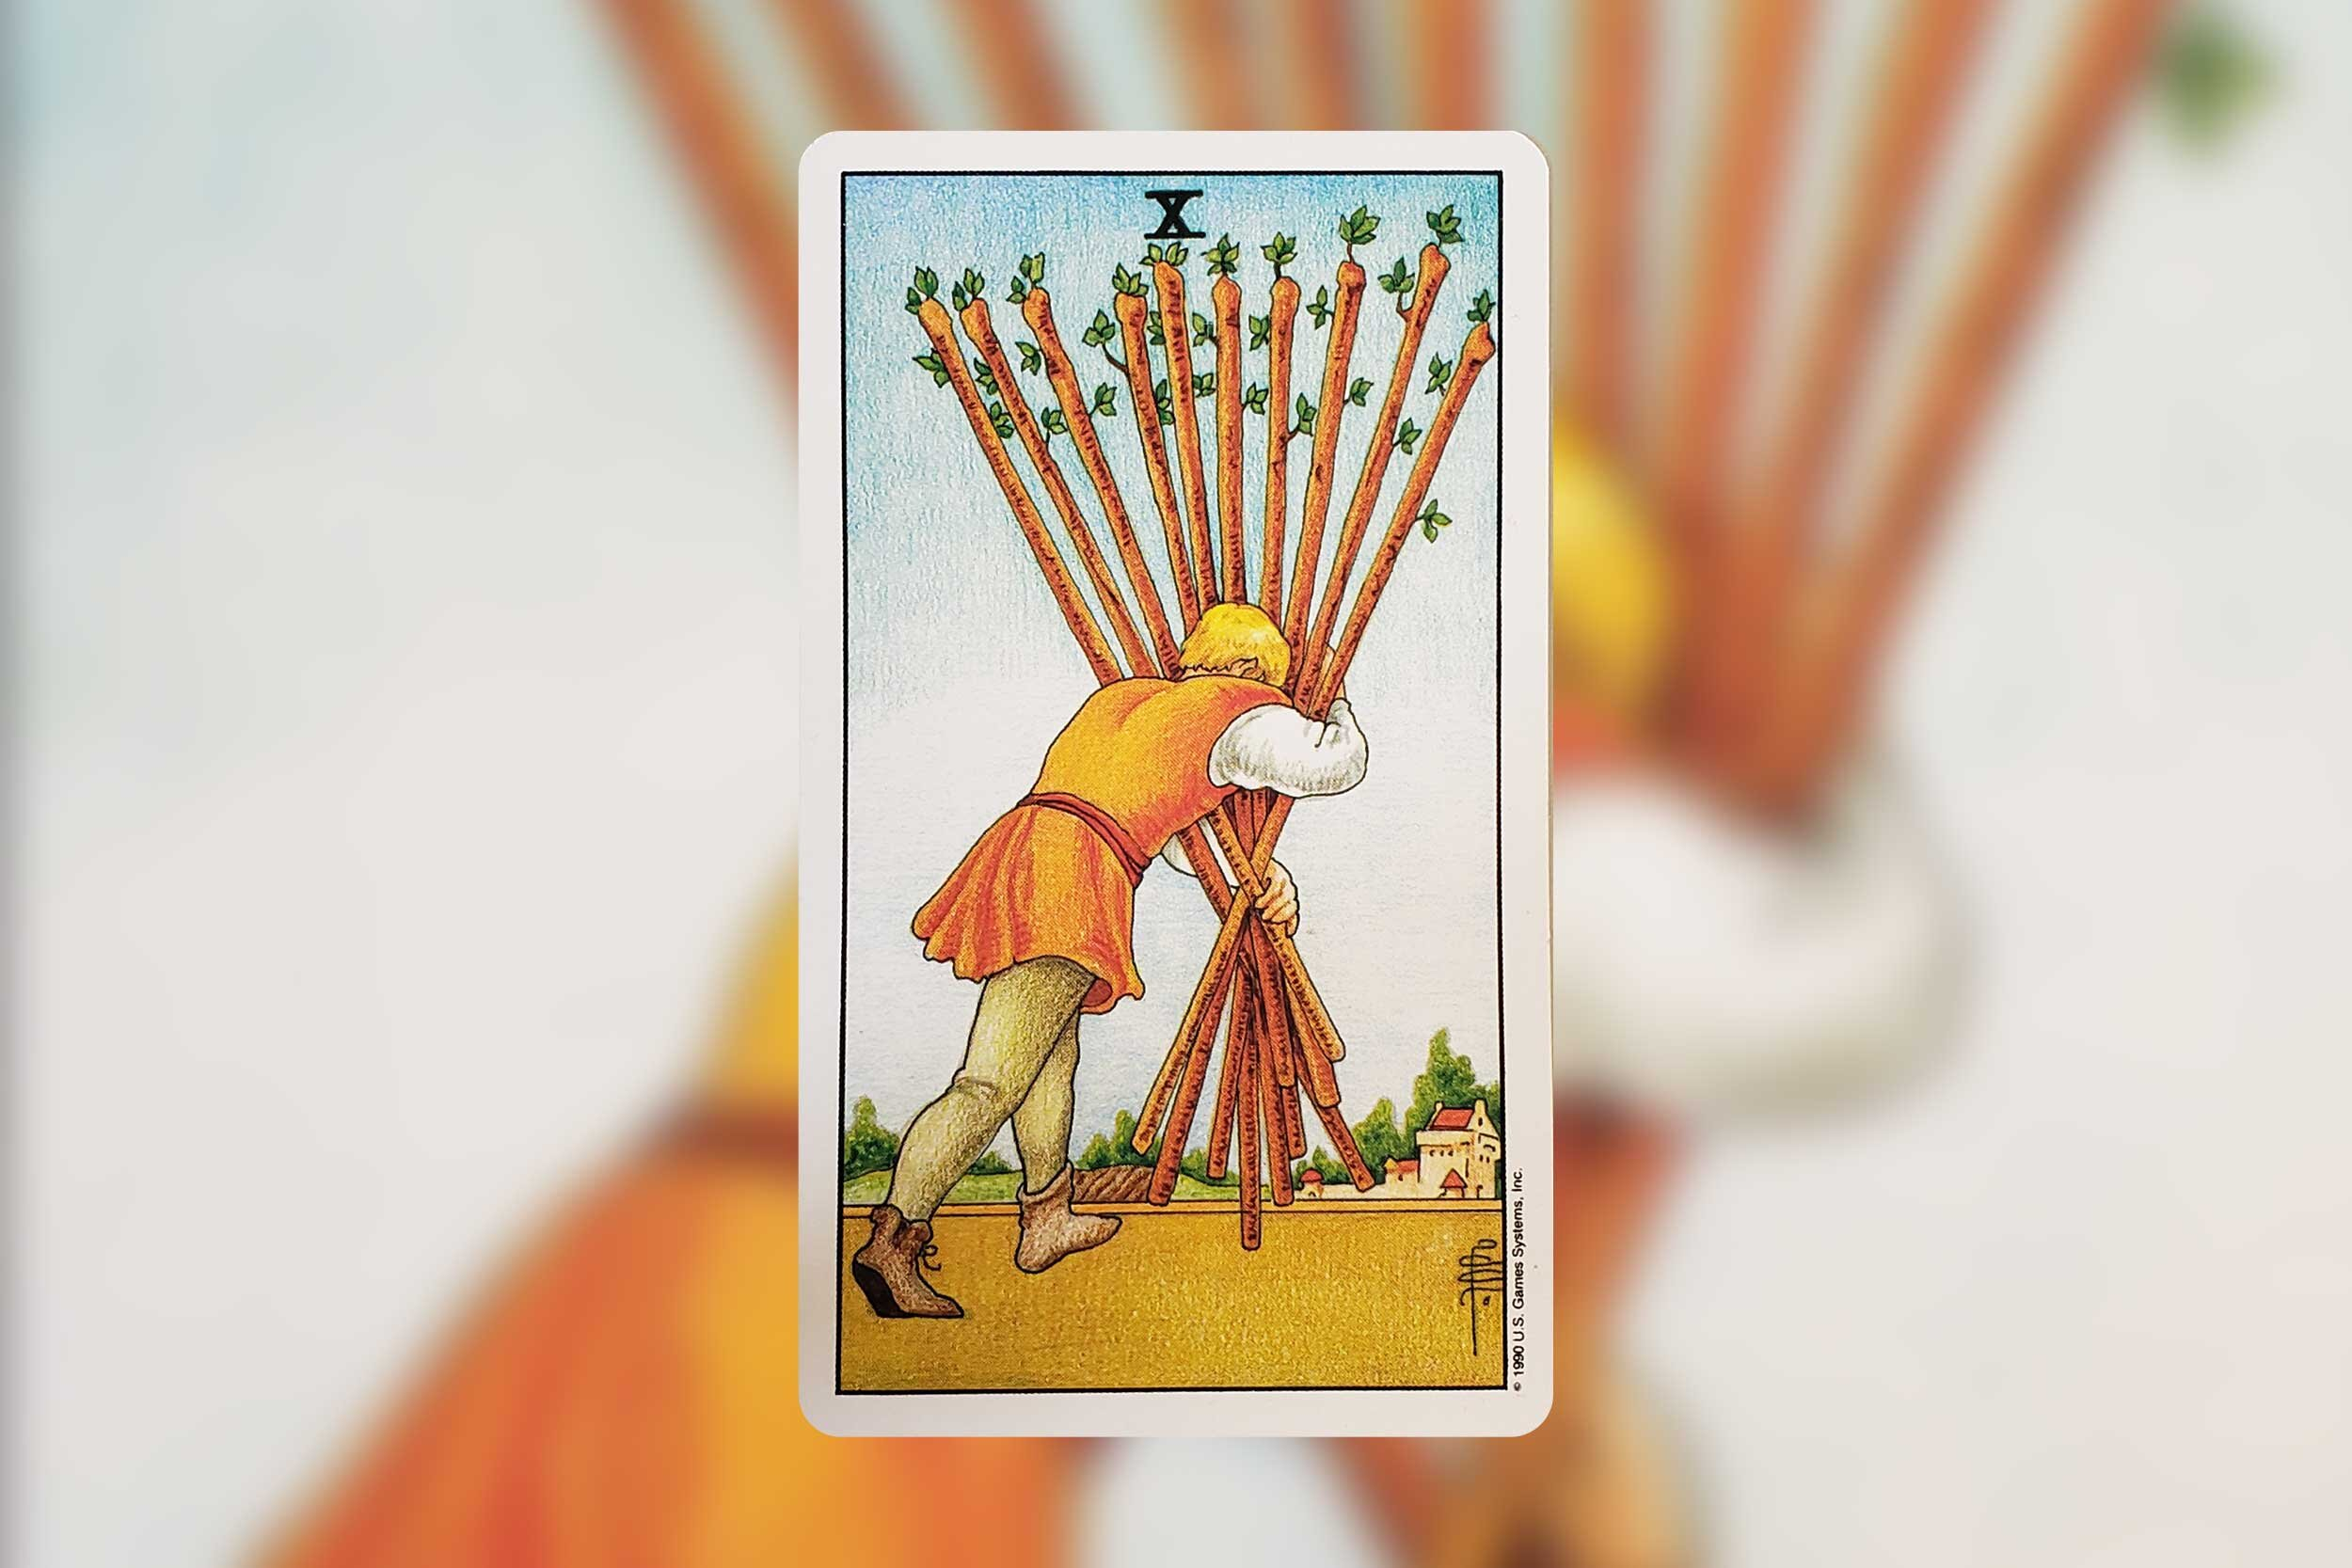 Image from Universal Waite Tarot, published by U.S. Games Systems, Inc. Copyright 1990, Used with permission.